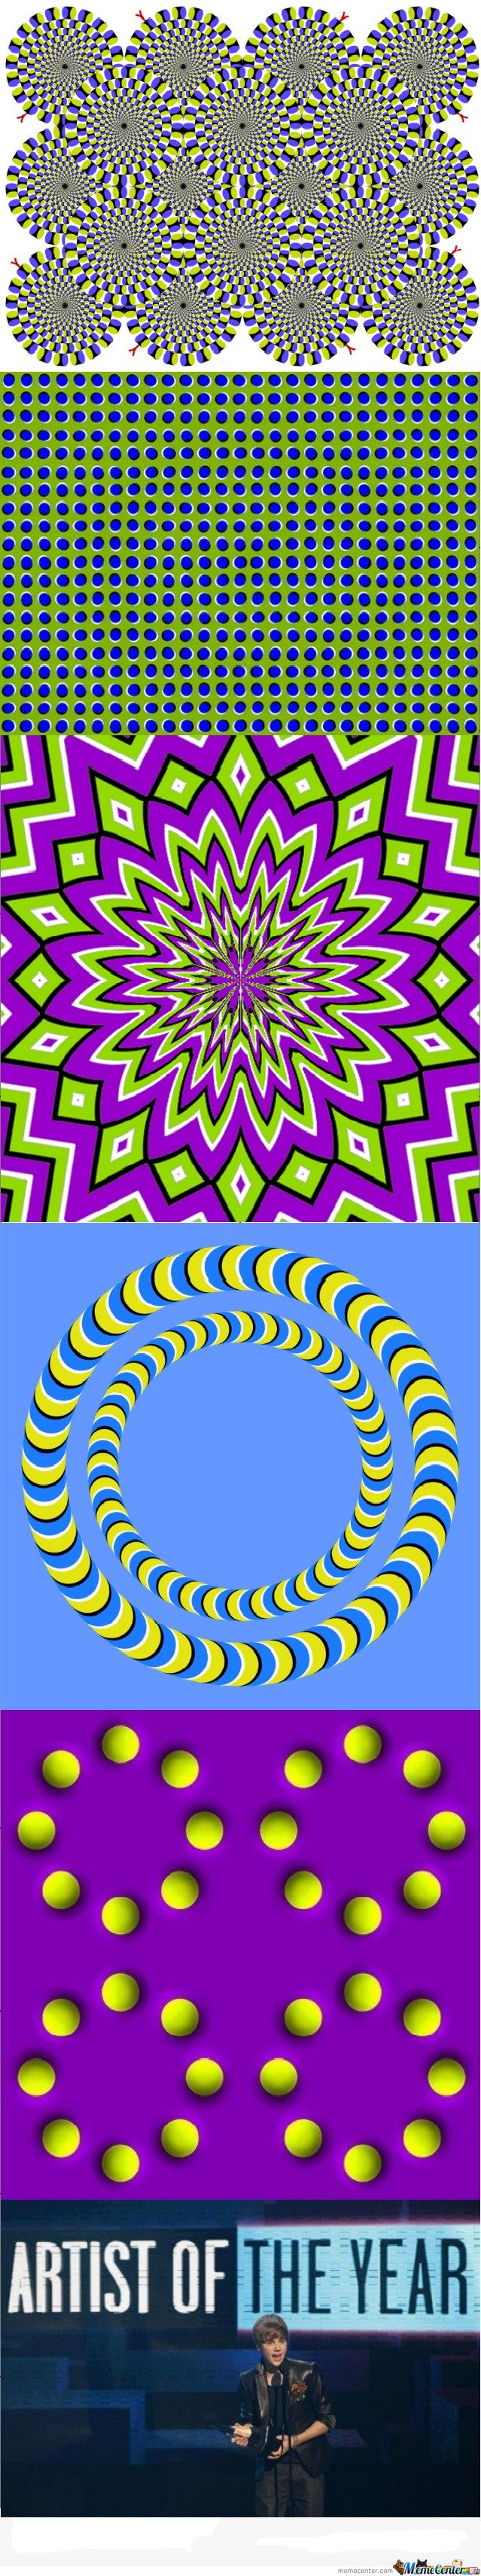 Optical illusions comp